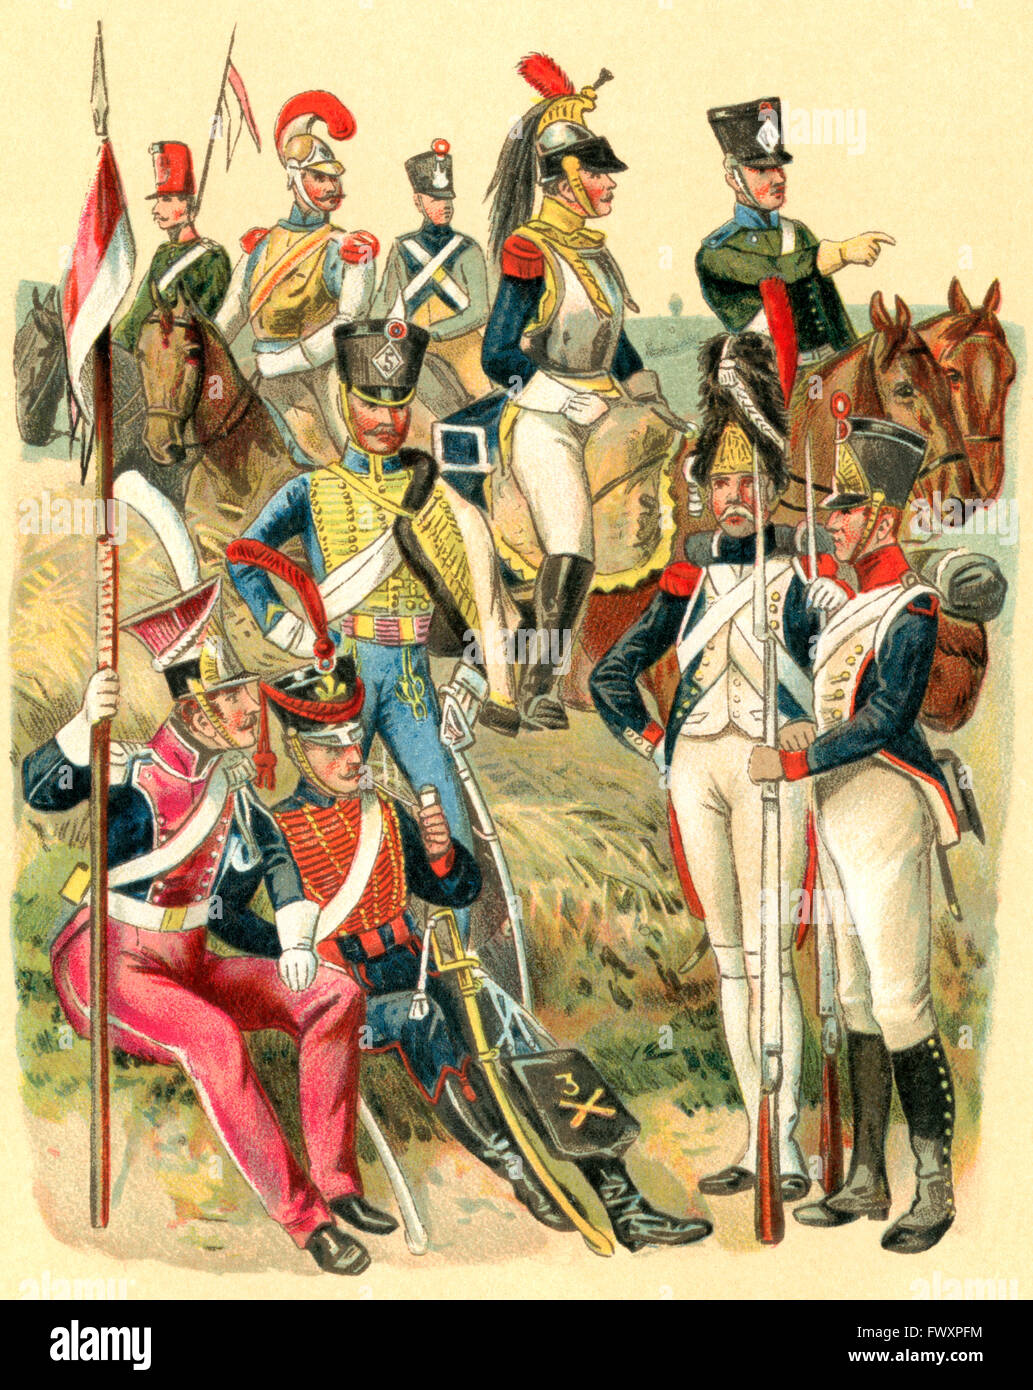 Uniforms of French troops at the time of Napoleon I. - Stock Image